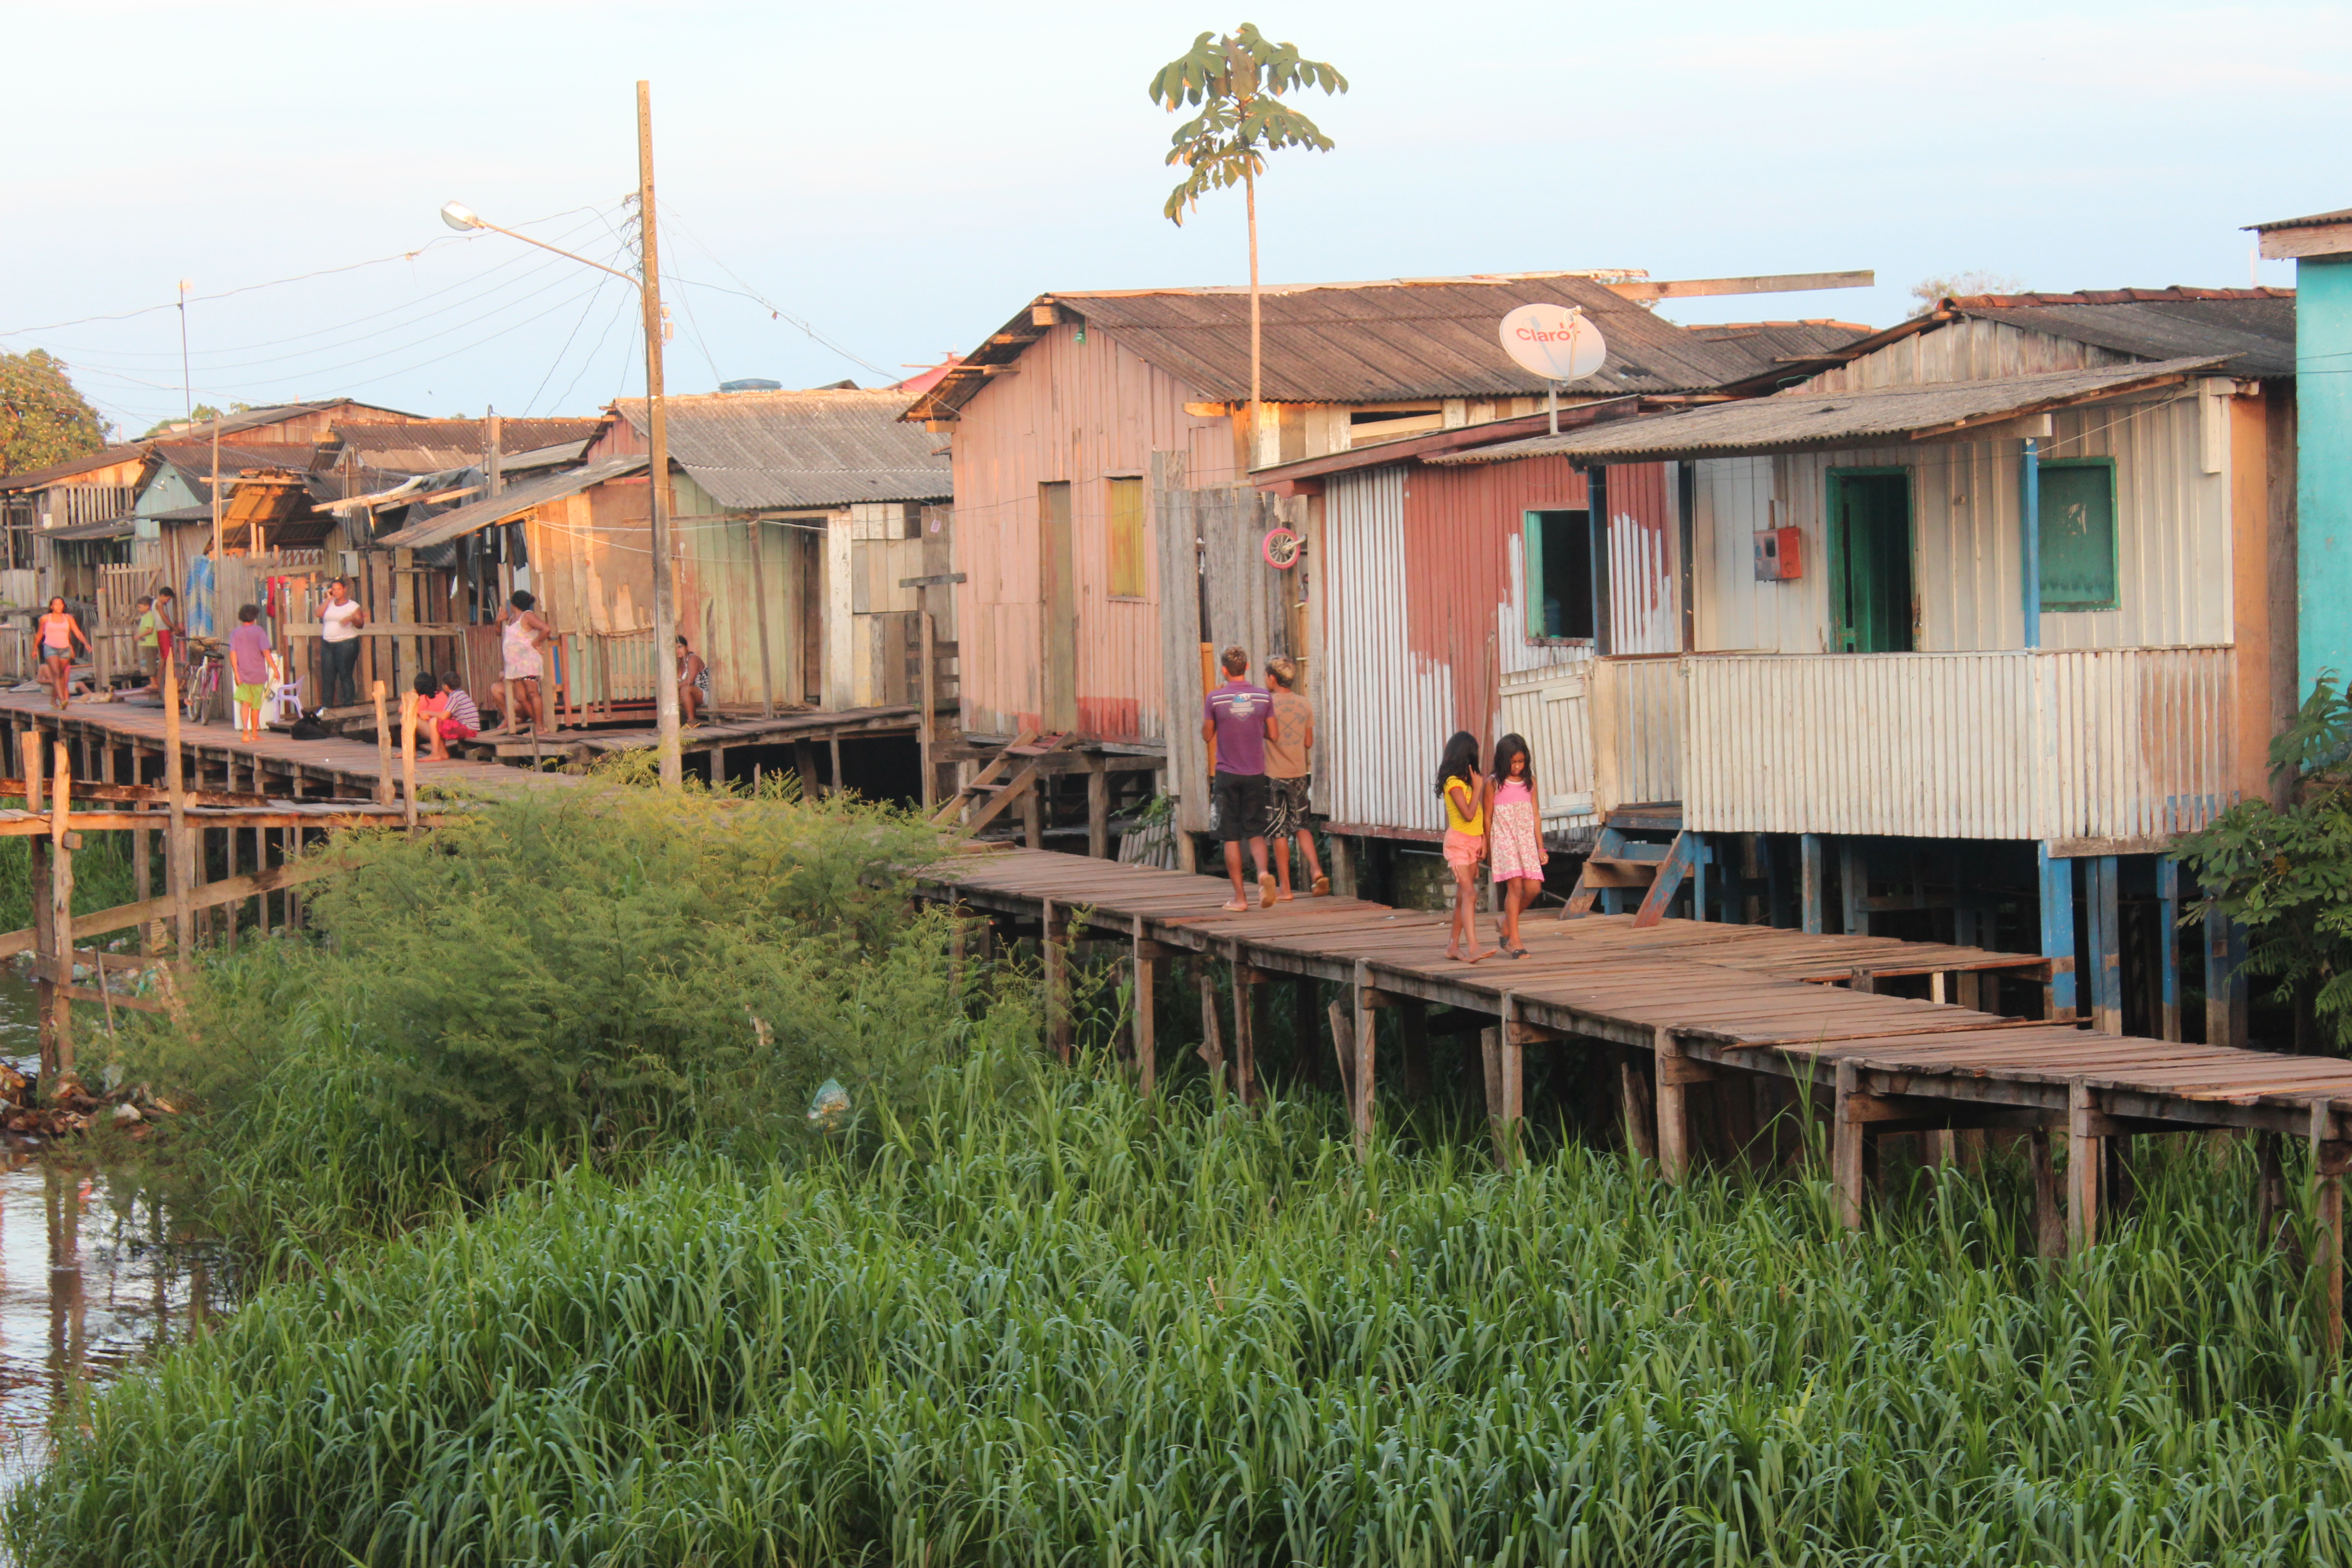 Palafitas -houses on stilts near the river, all of which will be inundated.